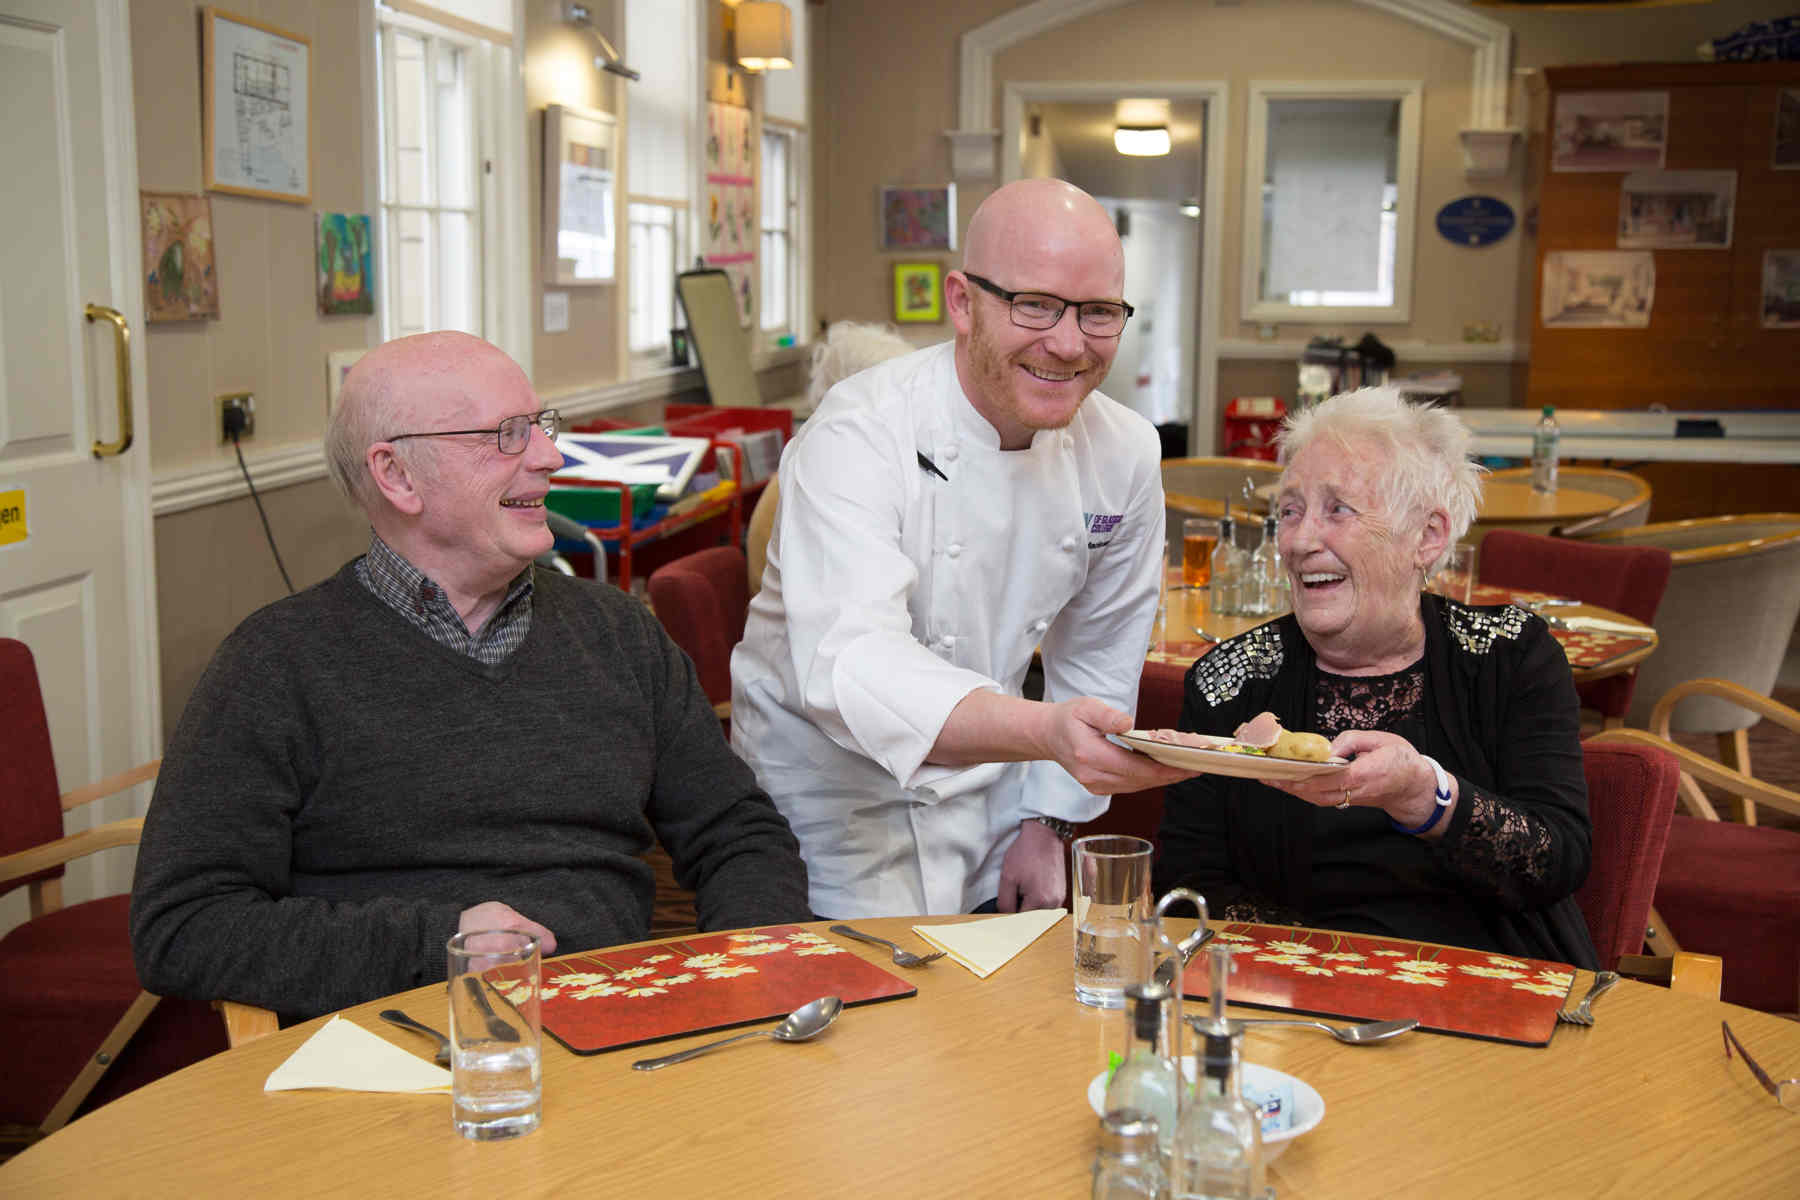 BBC Television's Masterchef: The Professionals winner Gary Maclean took time out from his hectic schedule since recently winning the title to serve lunch to day services patients at The Prince & Princess of Wales Hospice